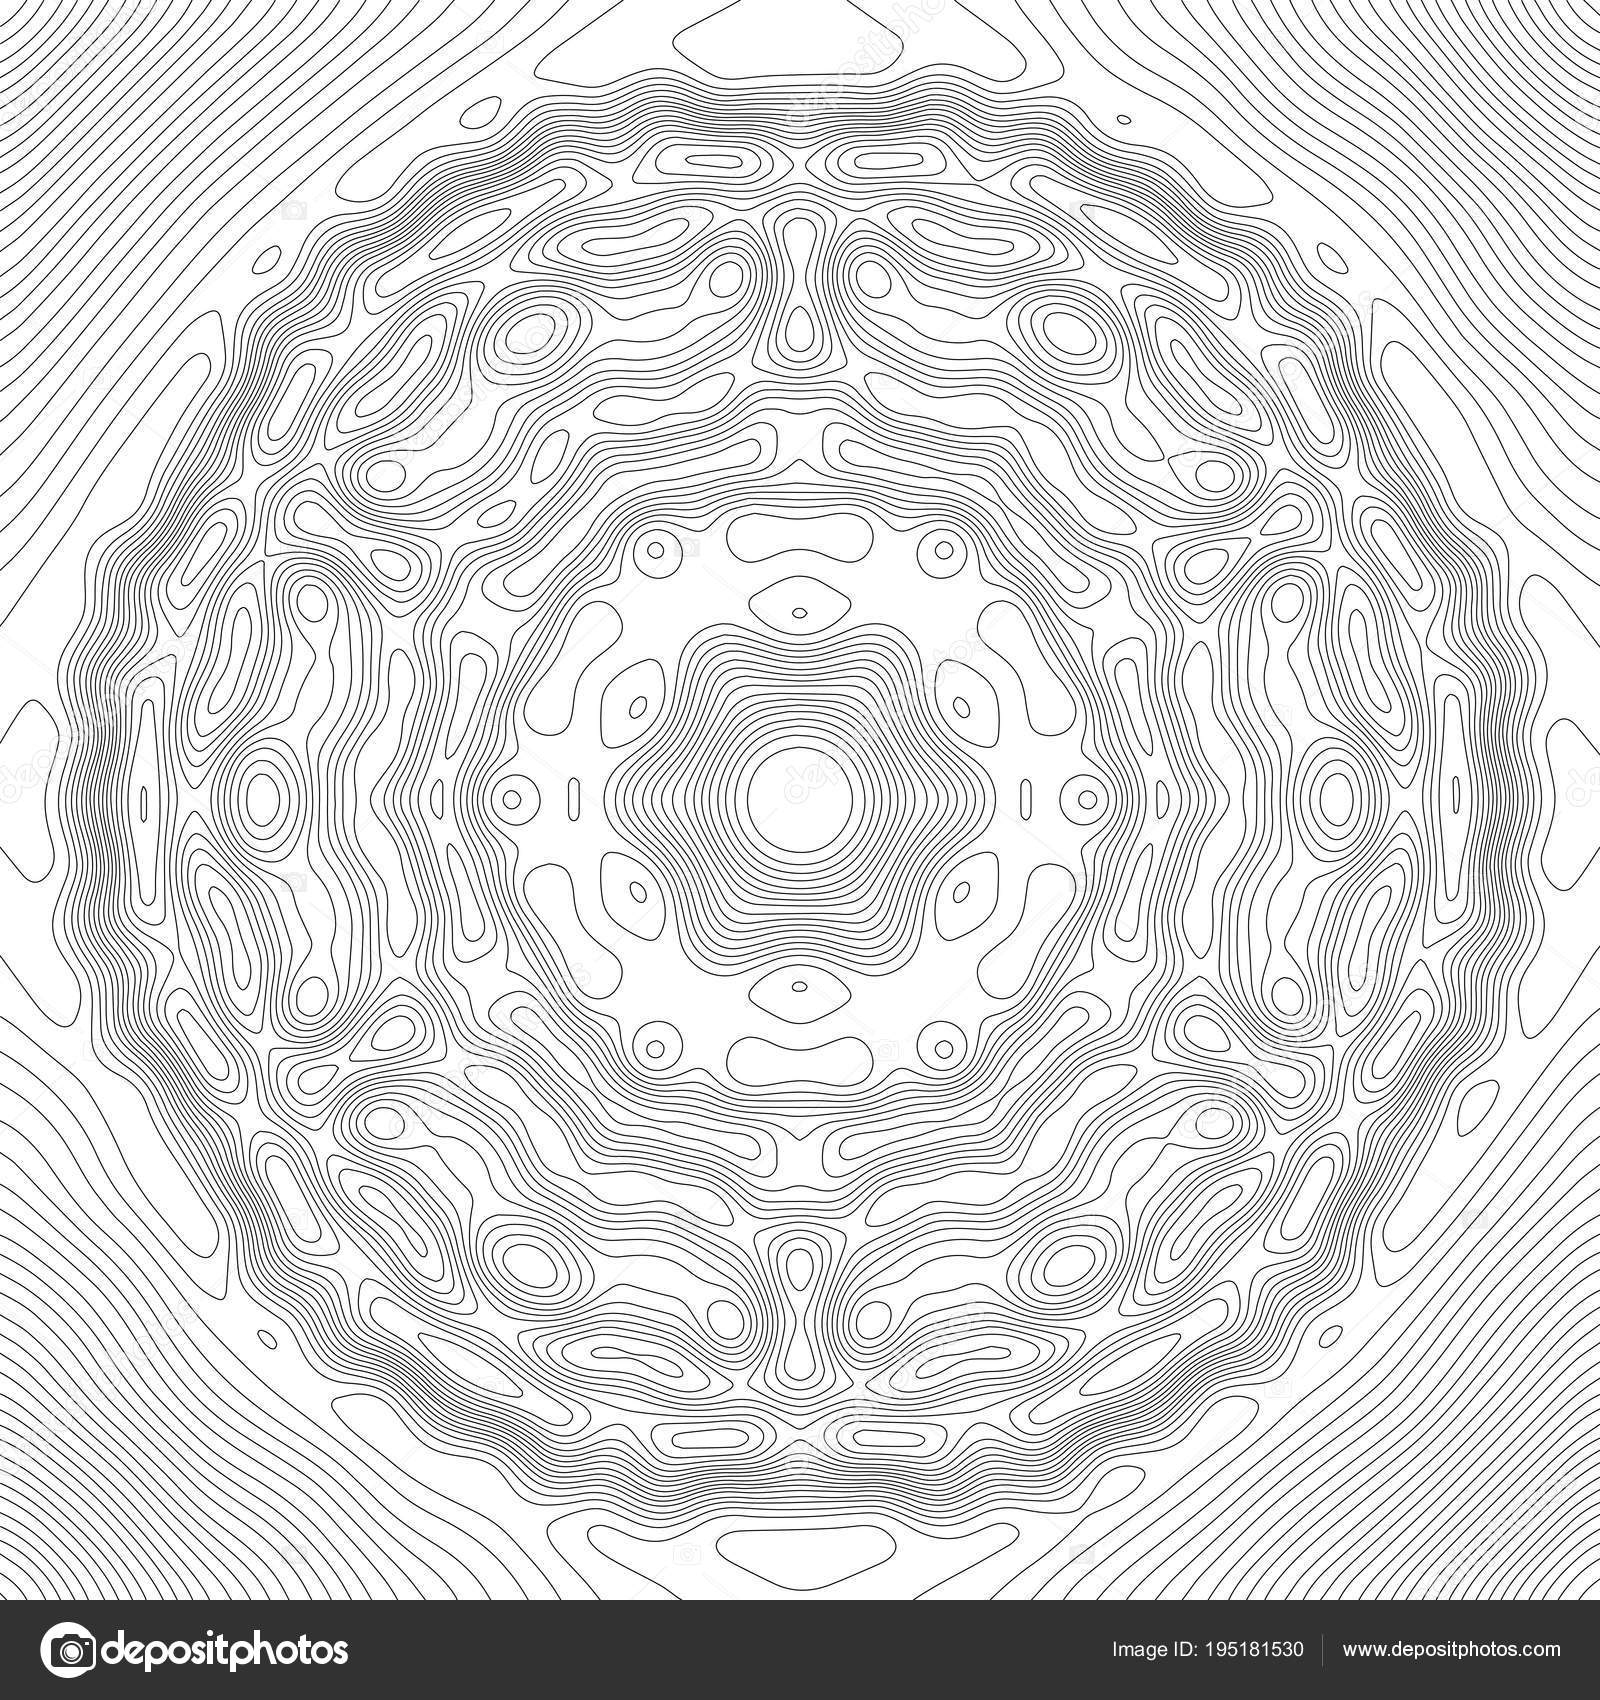 Topographic map contour background topo map with elevation contour topographic map contour background topo map with elevation contour map vector geographic world topography map grid abstract vector by damiengeso gumiabroncs Image collections